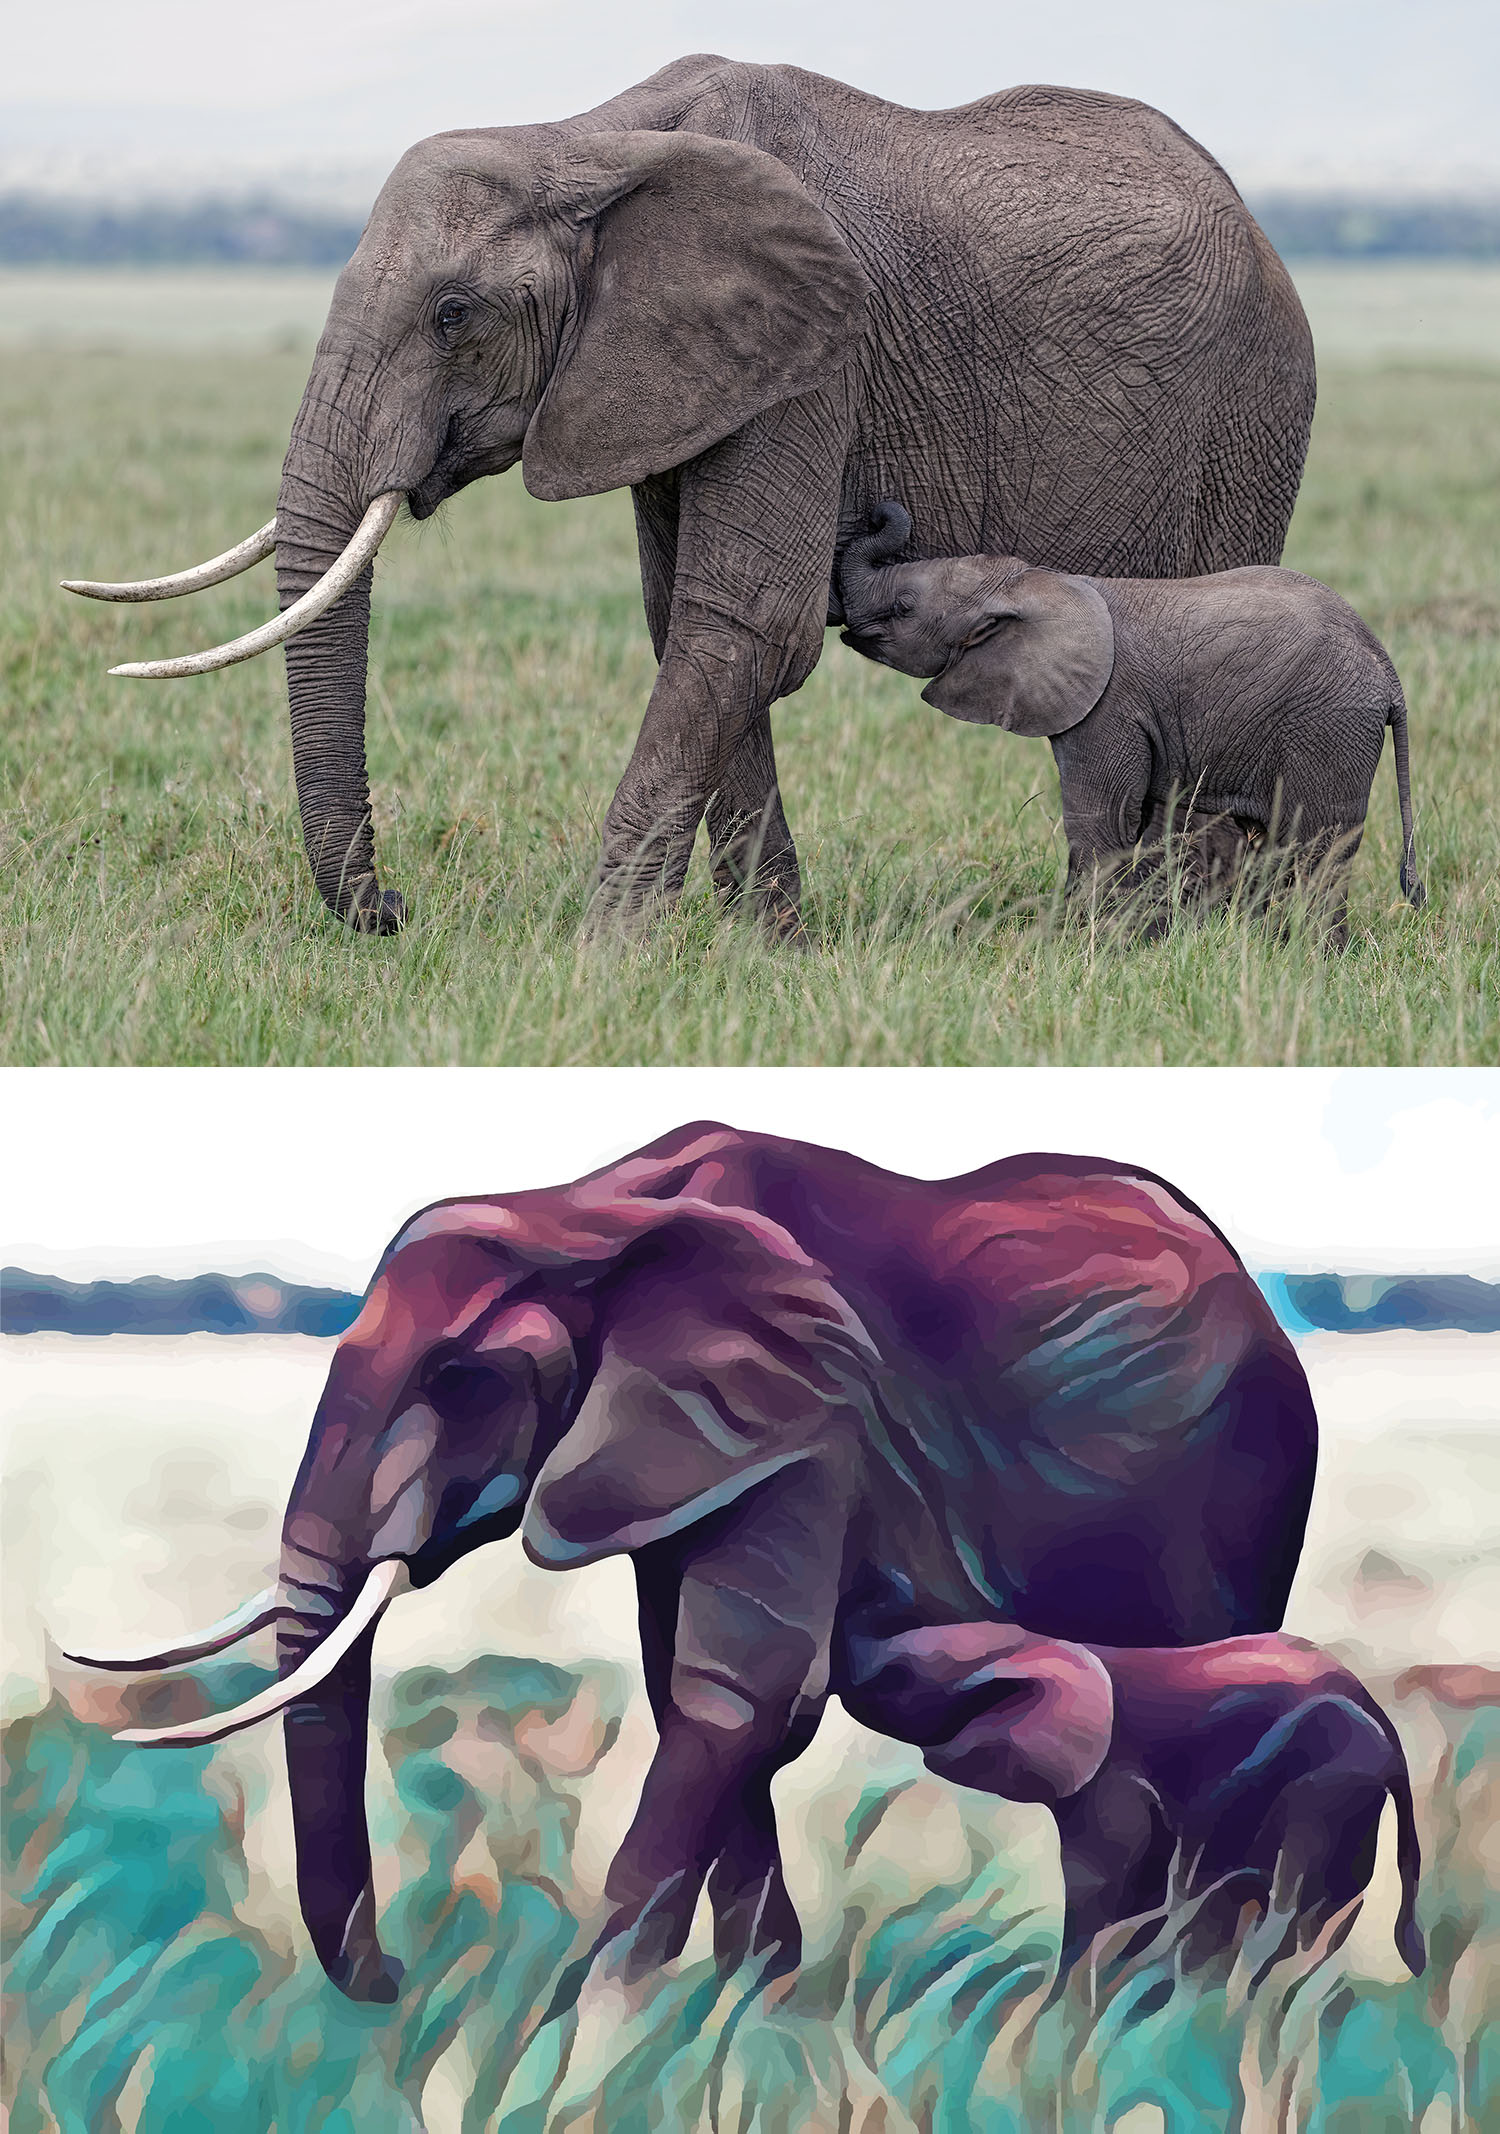 Before and after stylized image of a mama and baby elephant